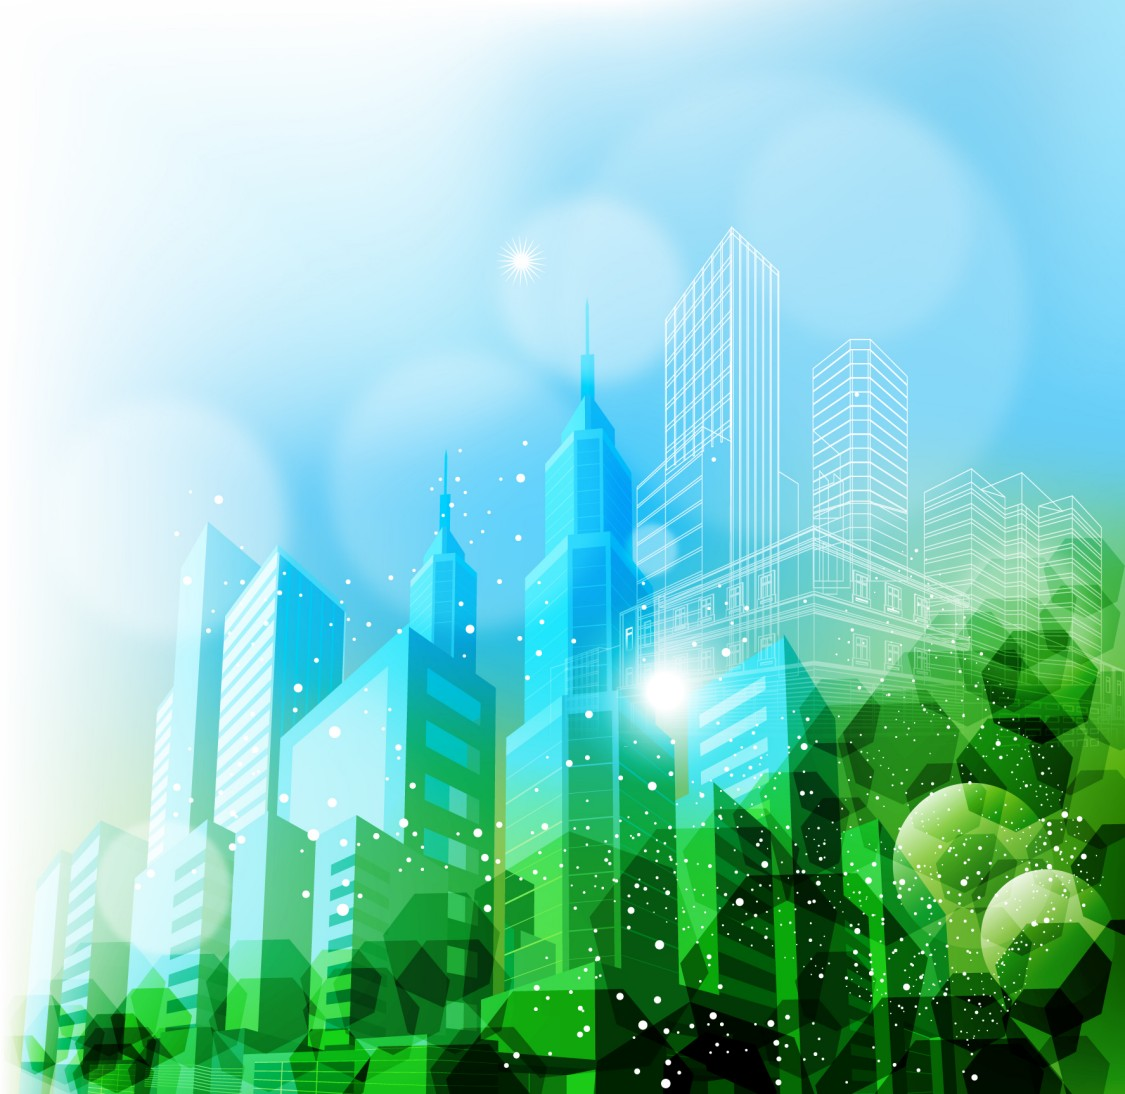 This green-blue graphic of city buildings and stylized trees demonstrate the push towards urbanization and sustainability in mobilty